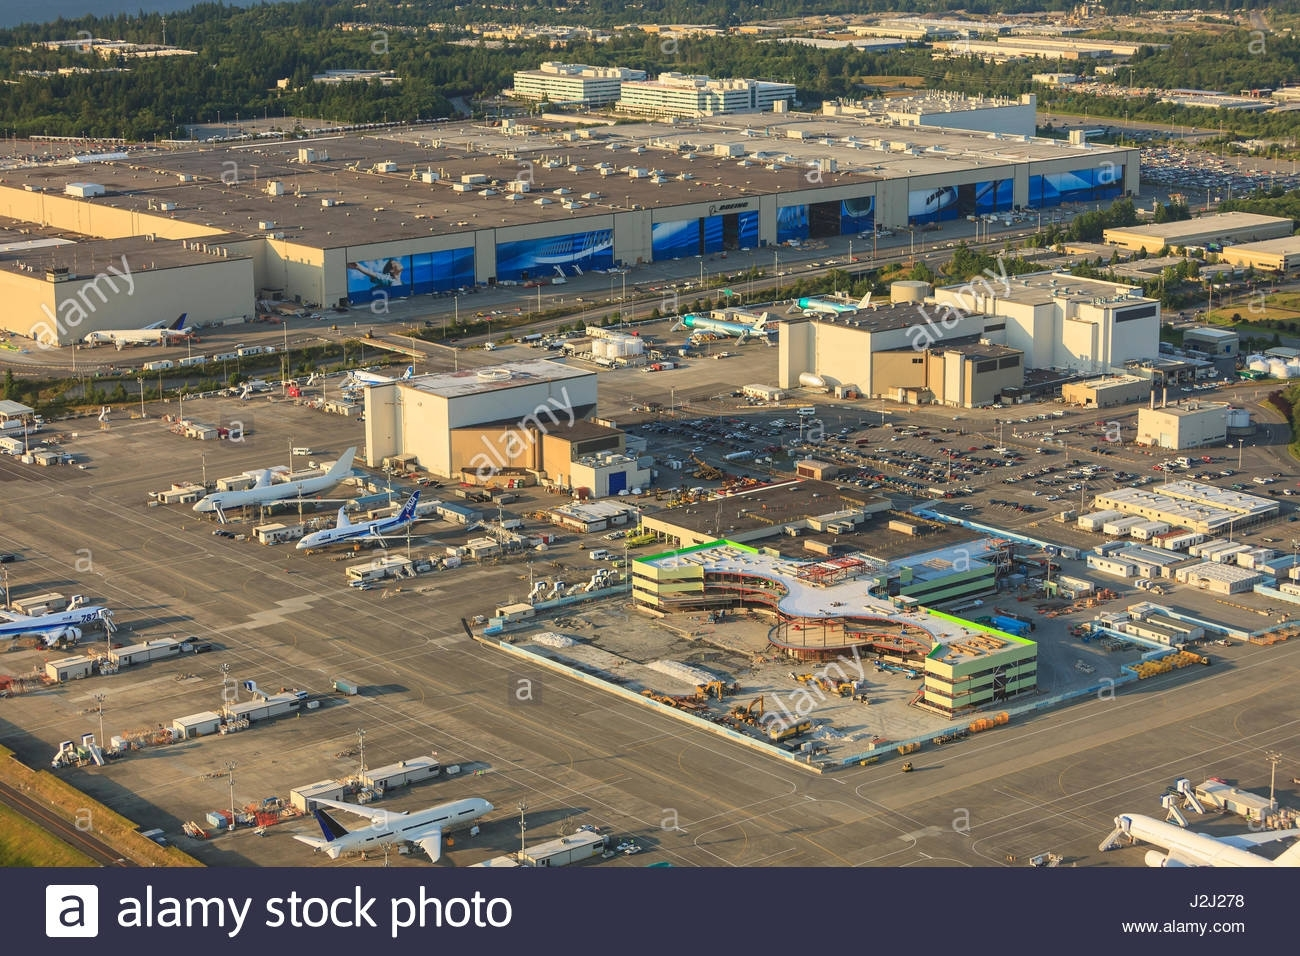 Aerial View Of Paine Field And Boeing Everett Plant, Largest with Boeing Everett Facility Map